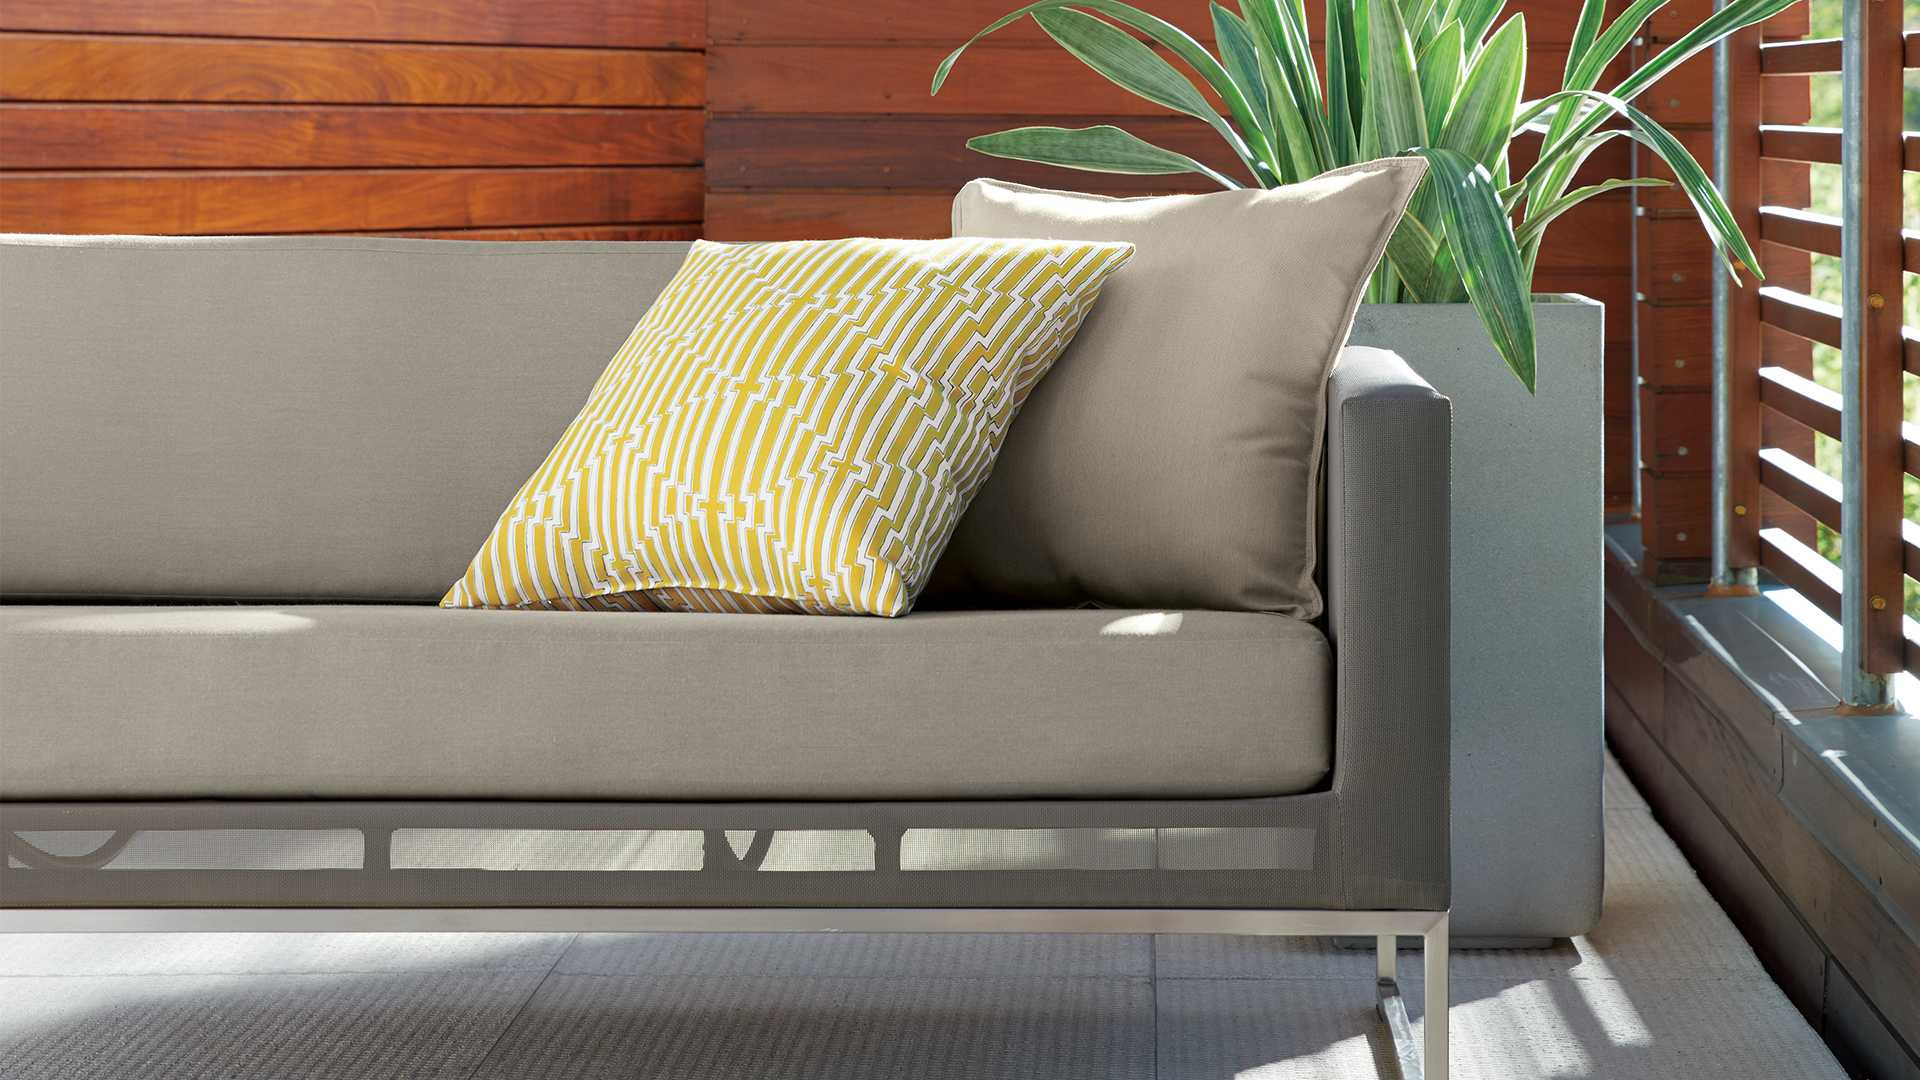 Best ideas about Modern Outdoor Furniture . Save or Pin Outdoor Furniture and Patio Furniture Sets Now.